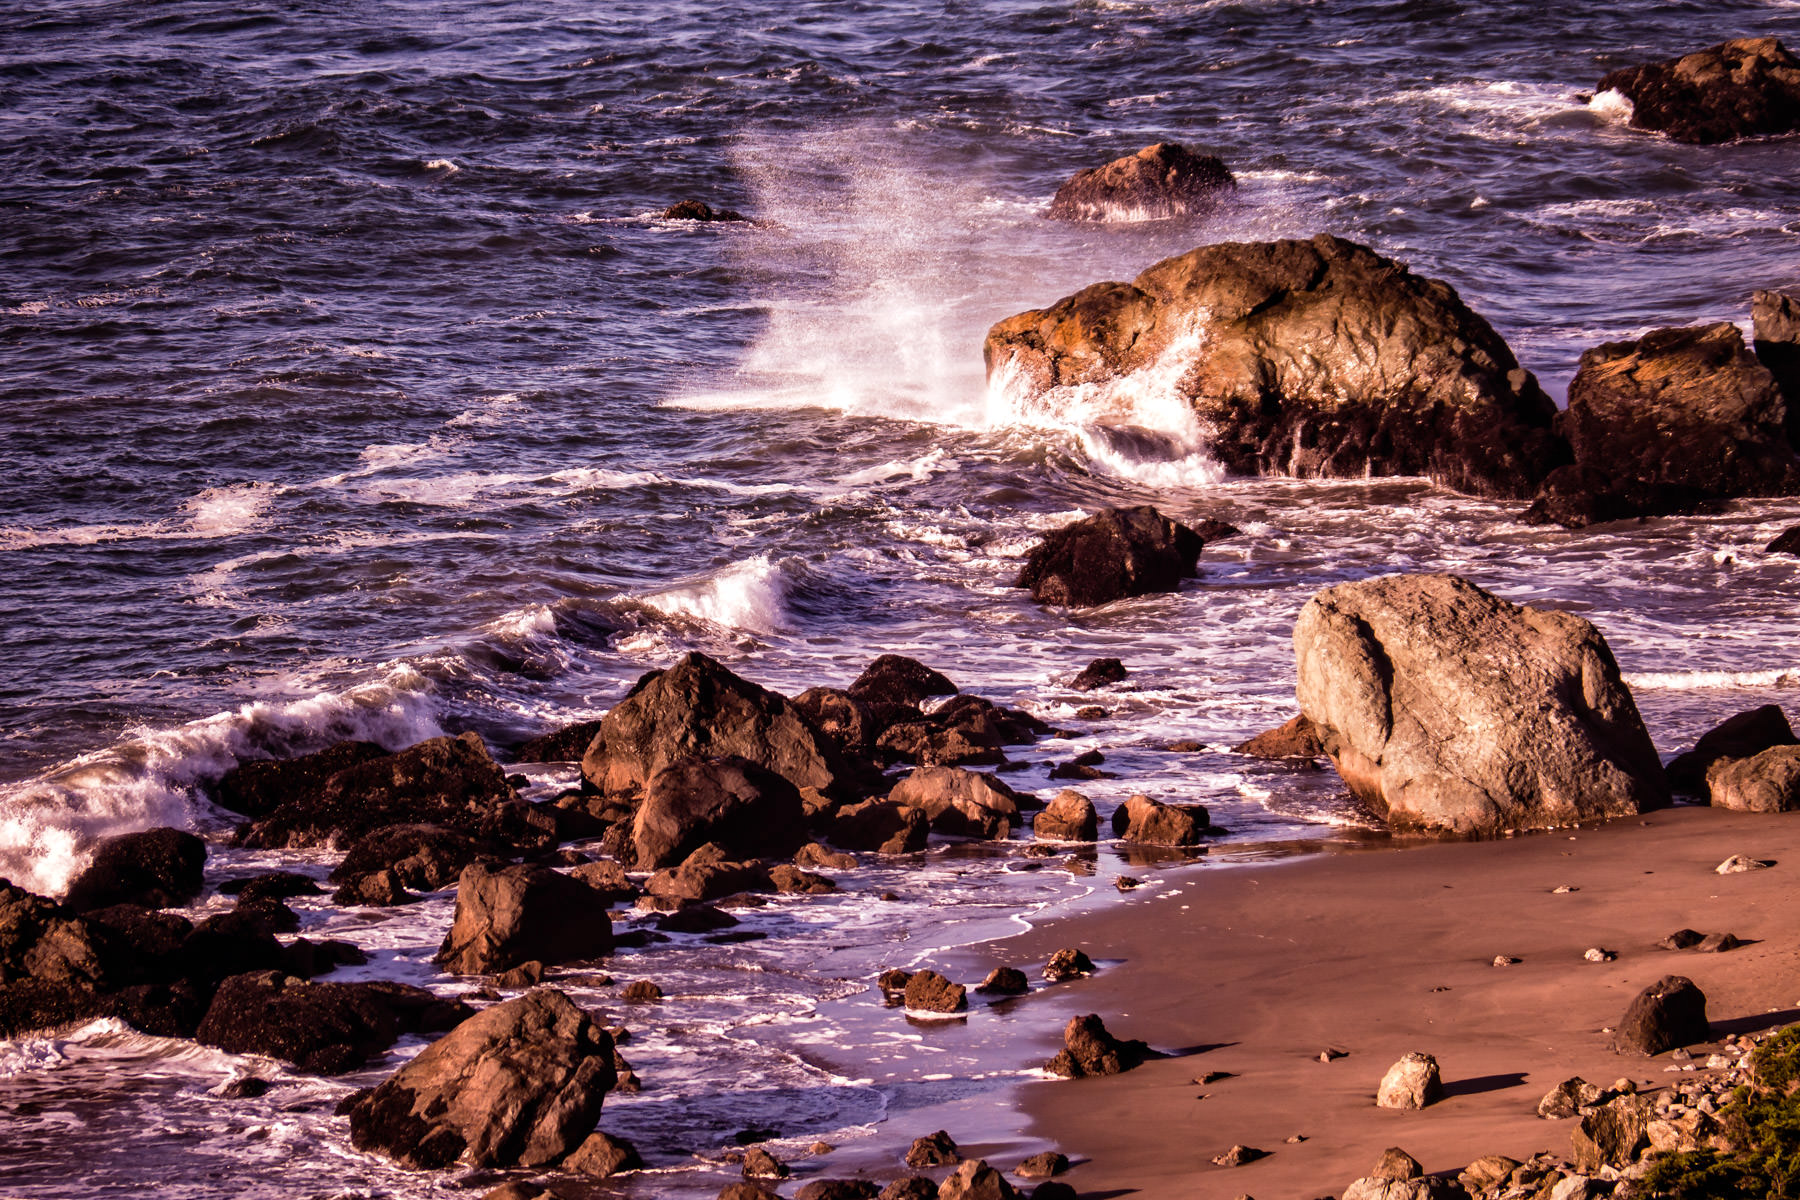 Waves crash onto rocks as the evening sun illuminates the beach at San Francisco's Lands End.